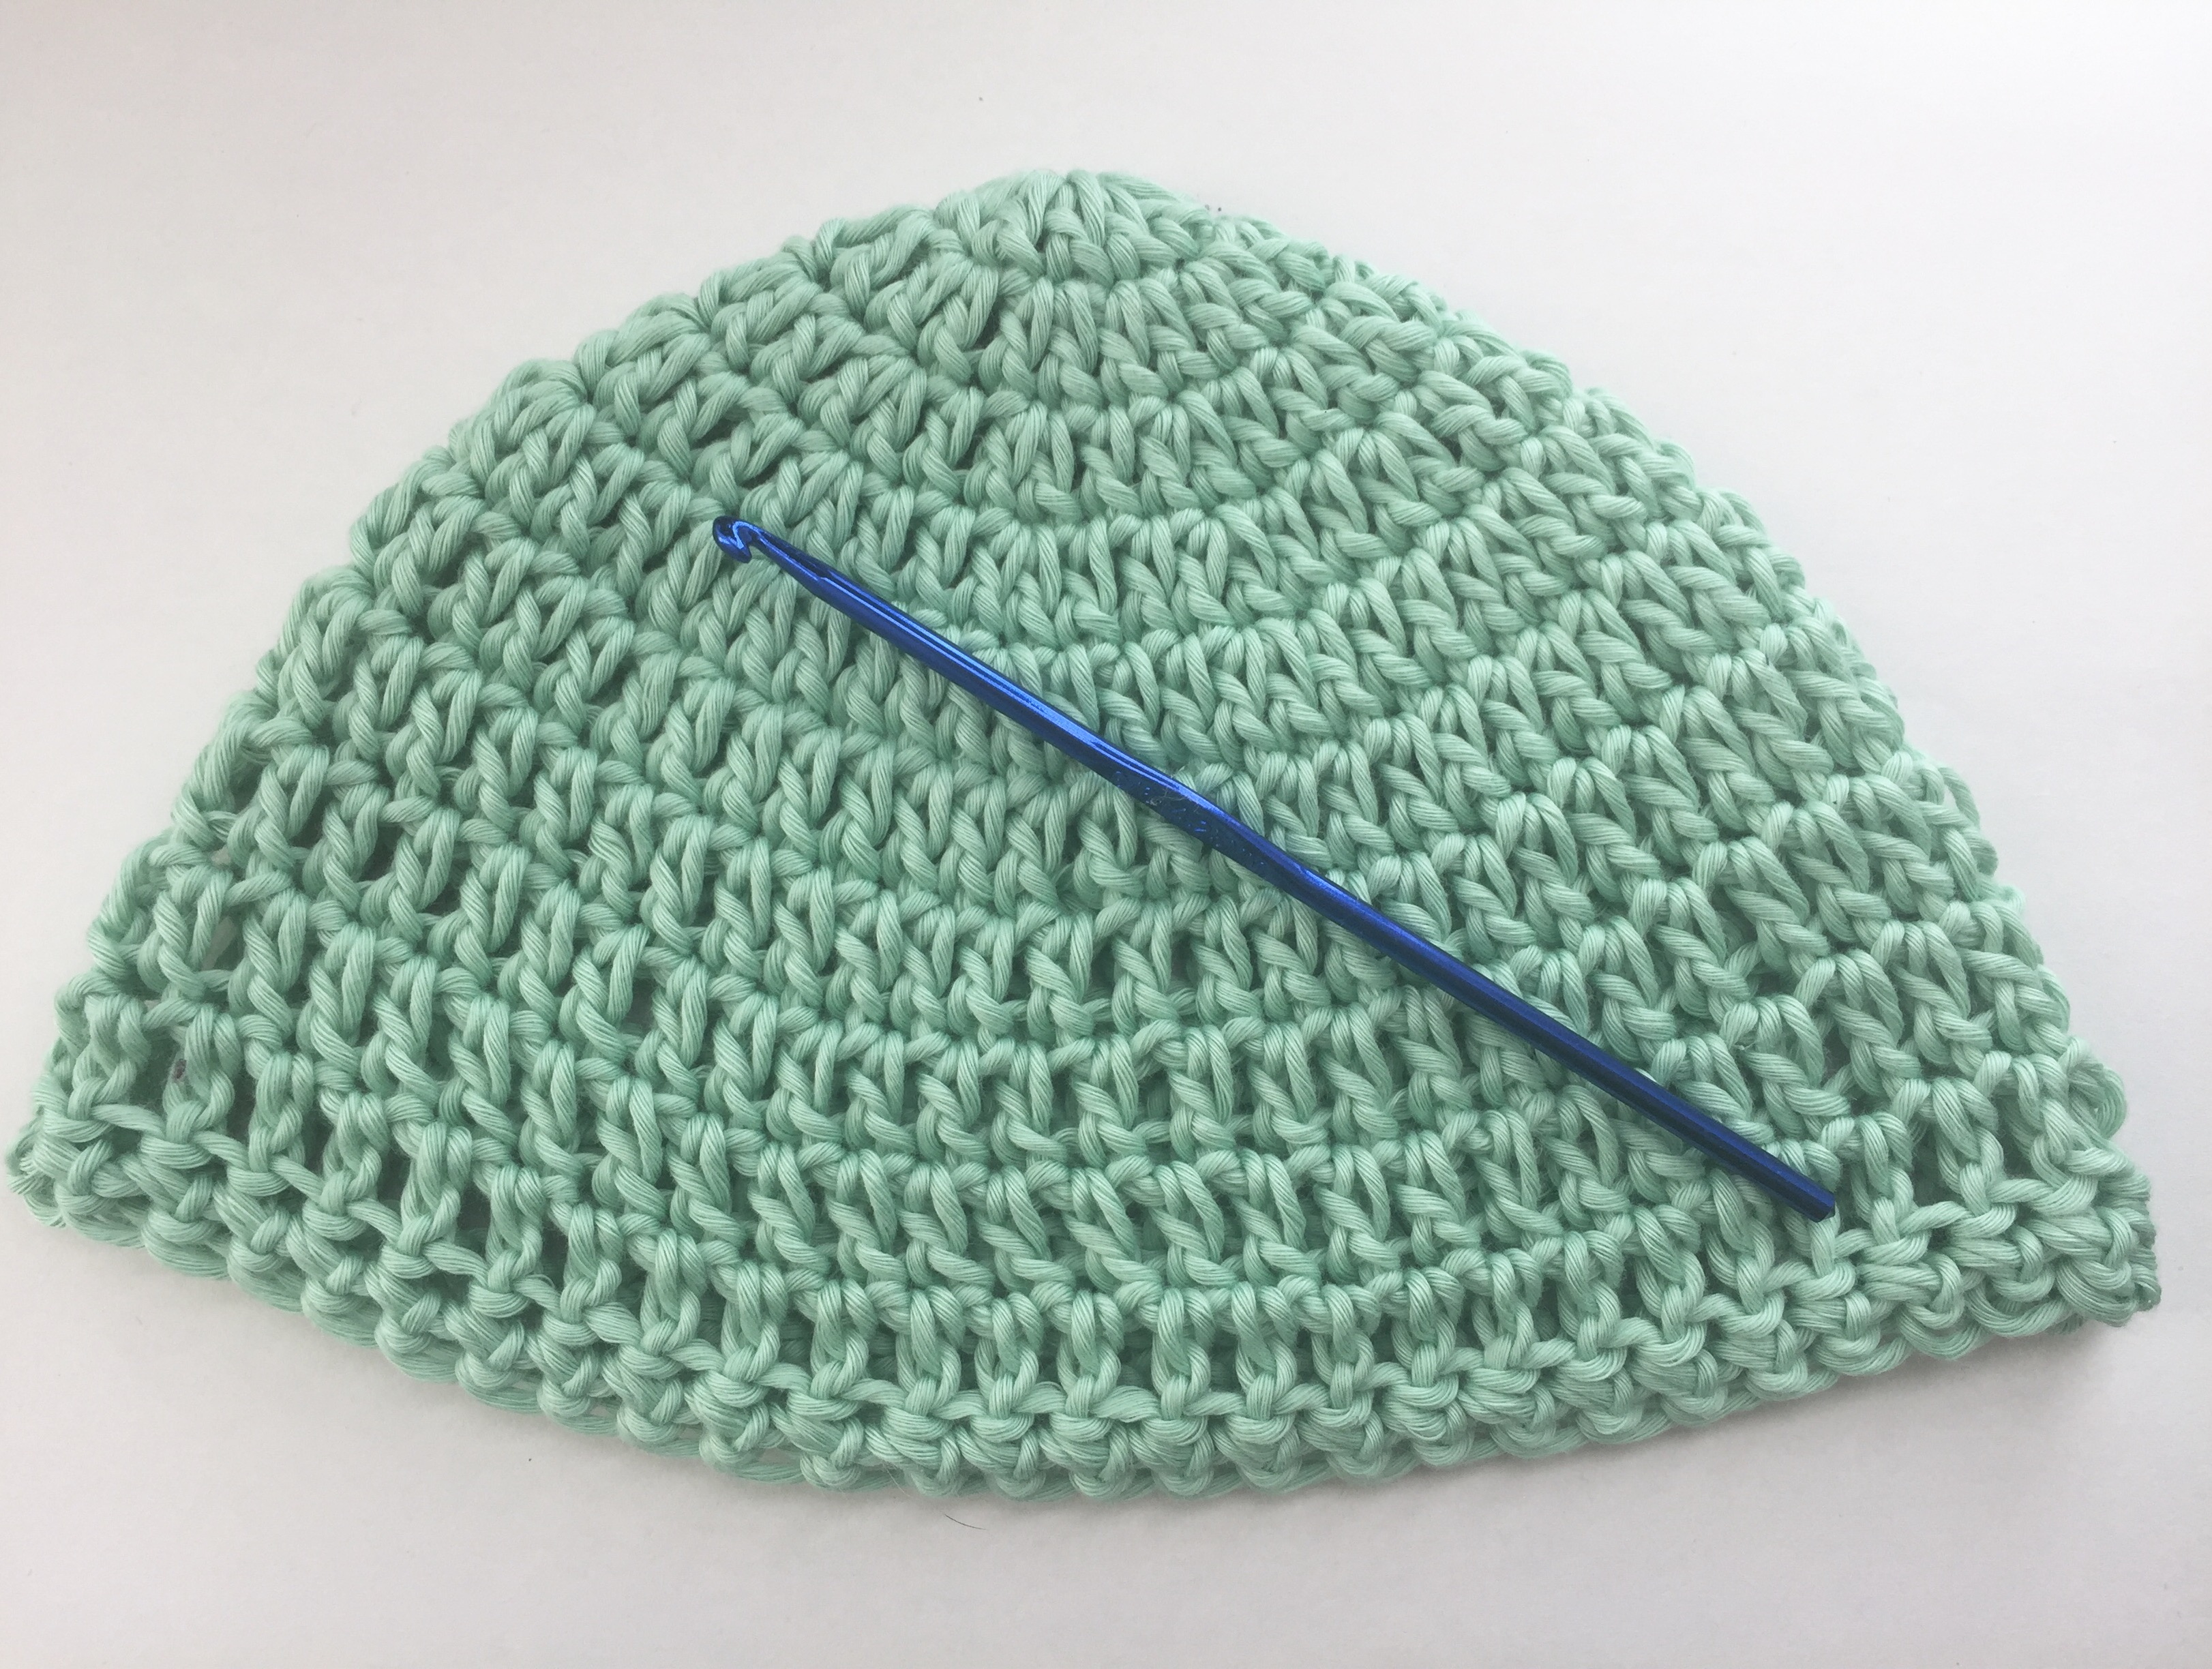 Green Crocheted Baby Hat With a Blue Crochet Hook